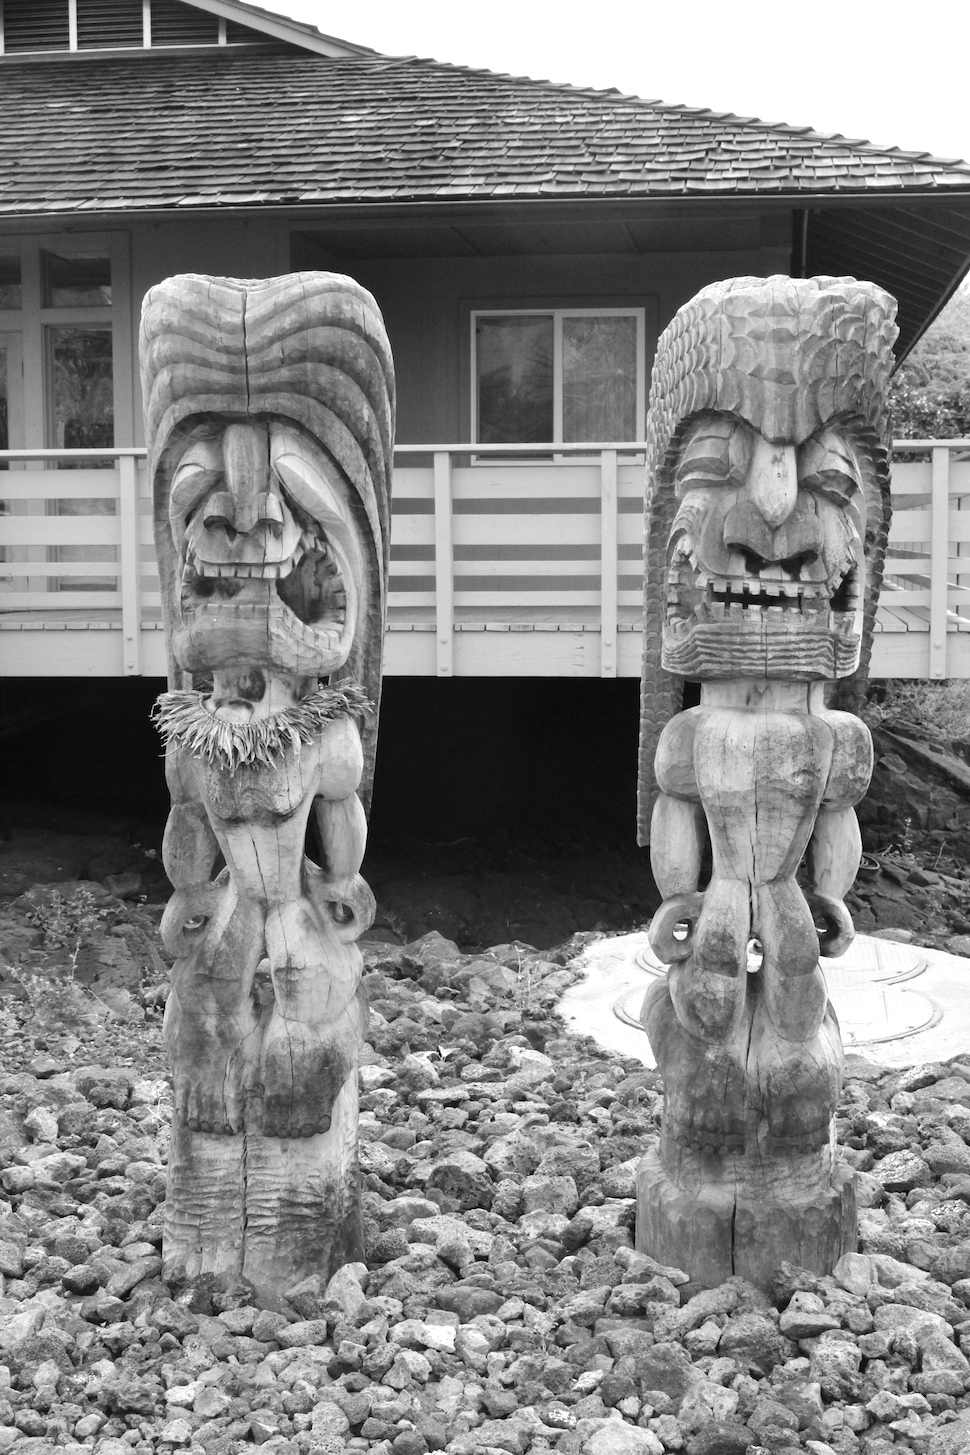 """""""Many ki'i (carved wooden images) surround the Hale o Keawe, housing the bones of the chiefs that infuse the area with their power or mana. If you reached this sacred place, you would be saved."""" - from NPS.gov"""